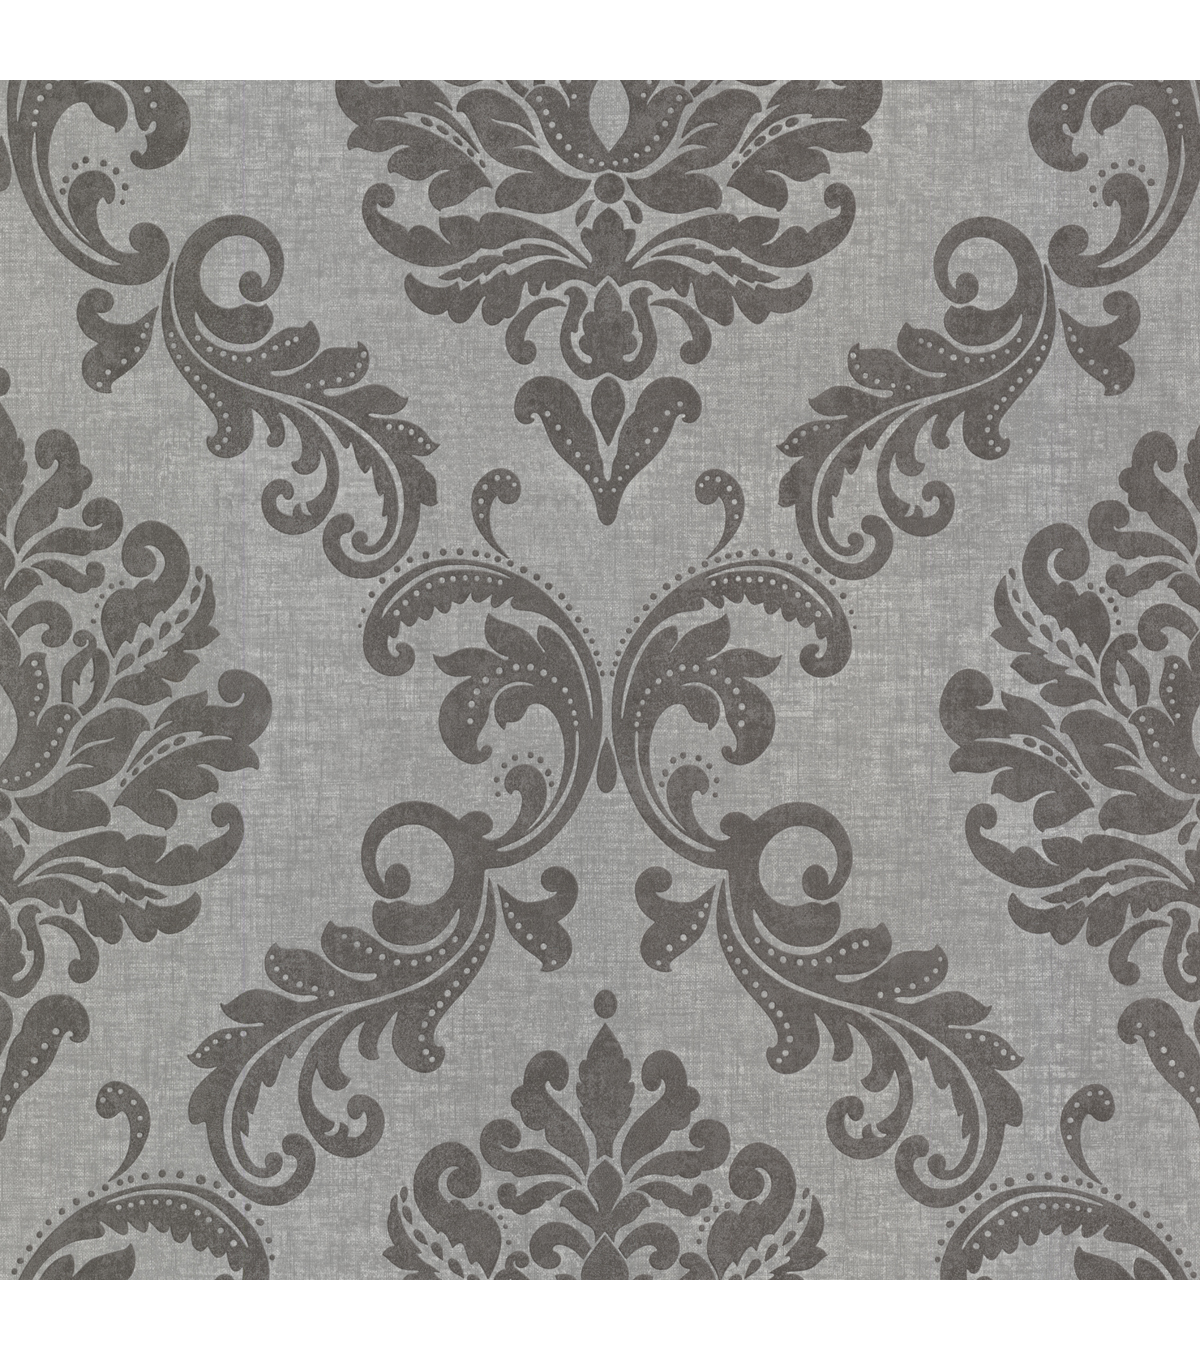 Sebastion Grey Damask Wallpaper Sample